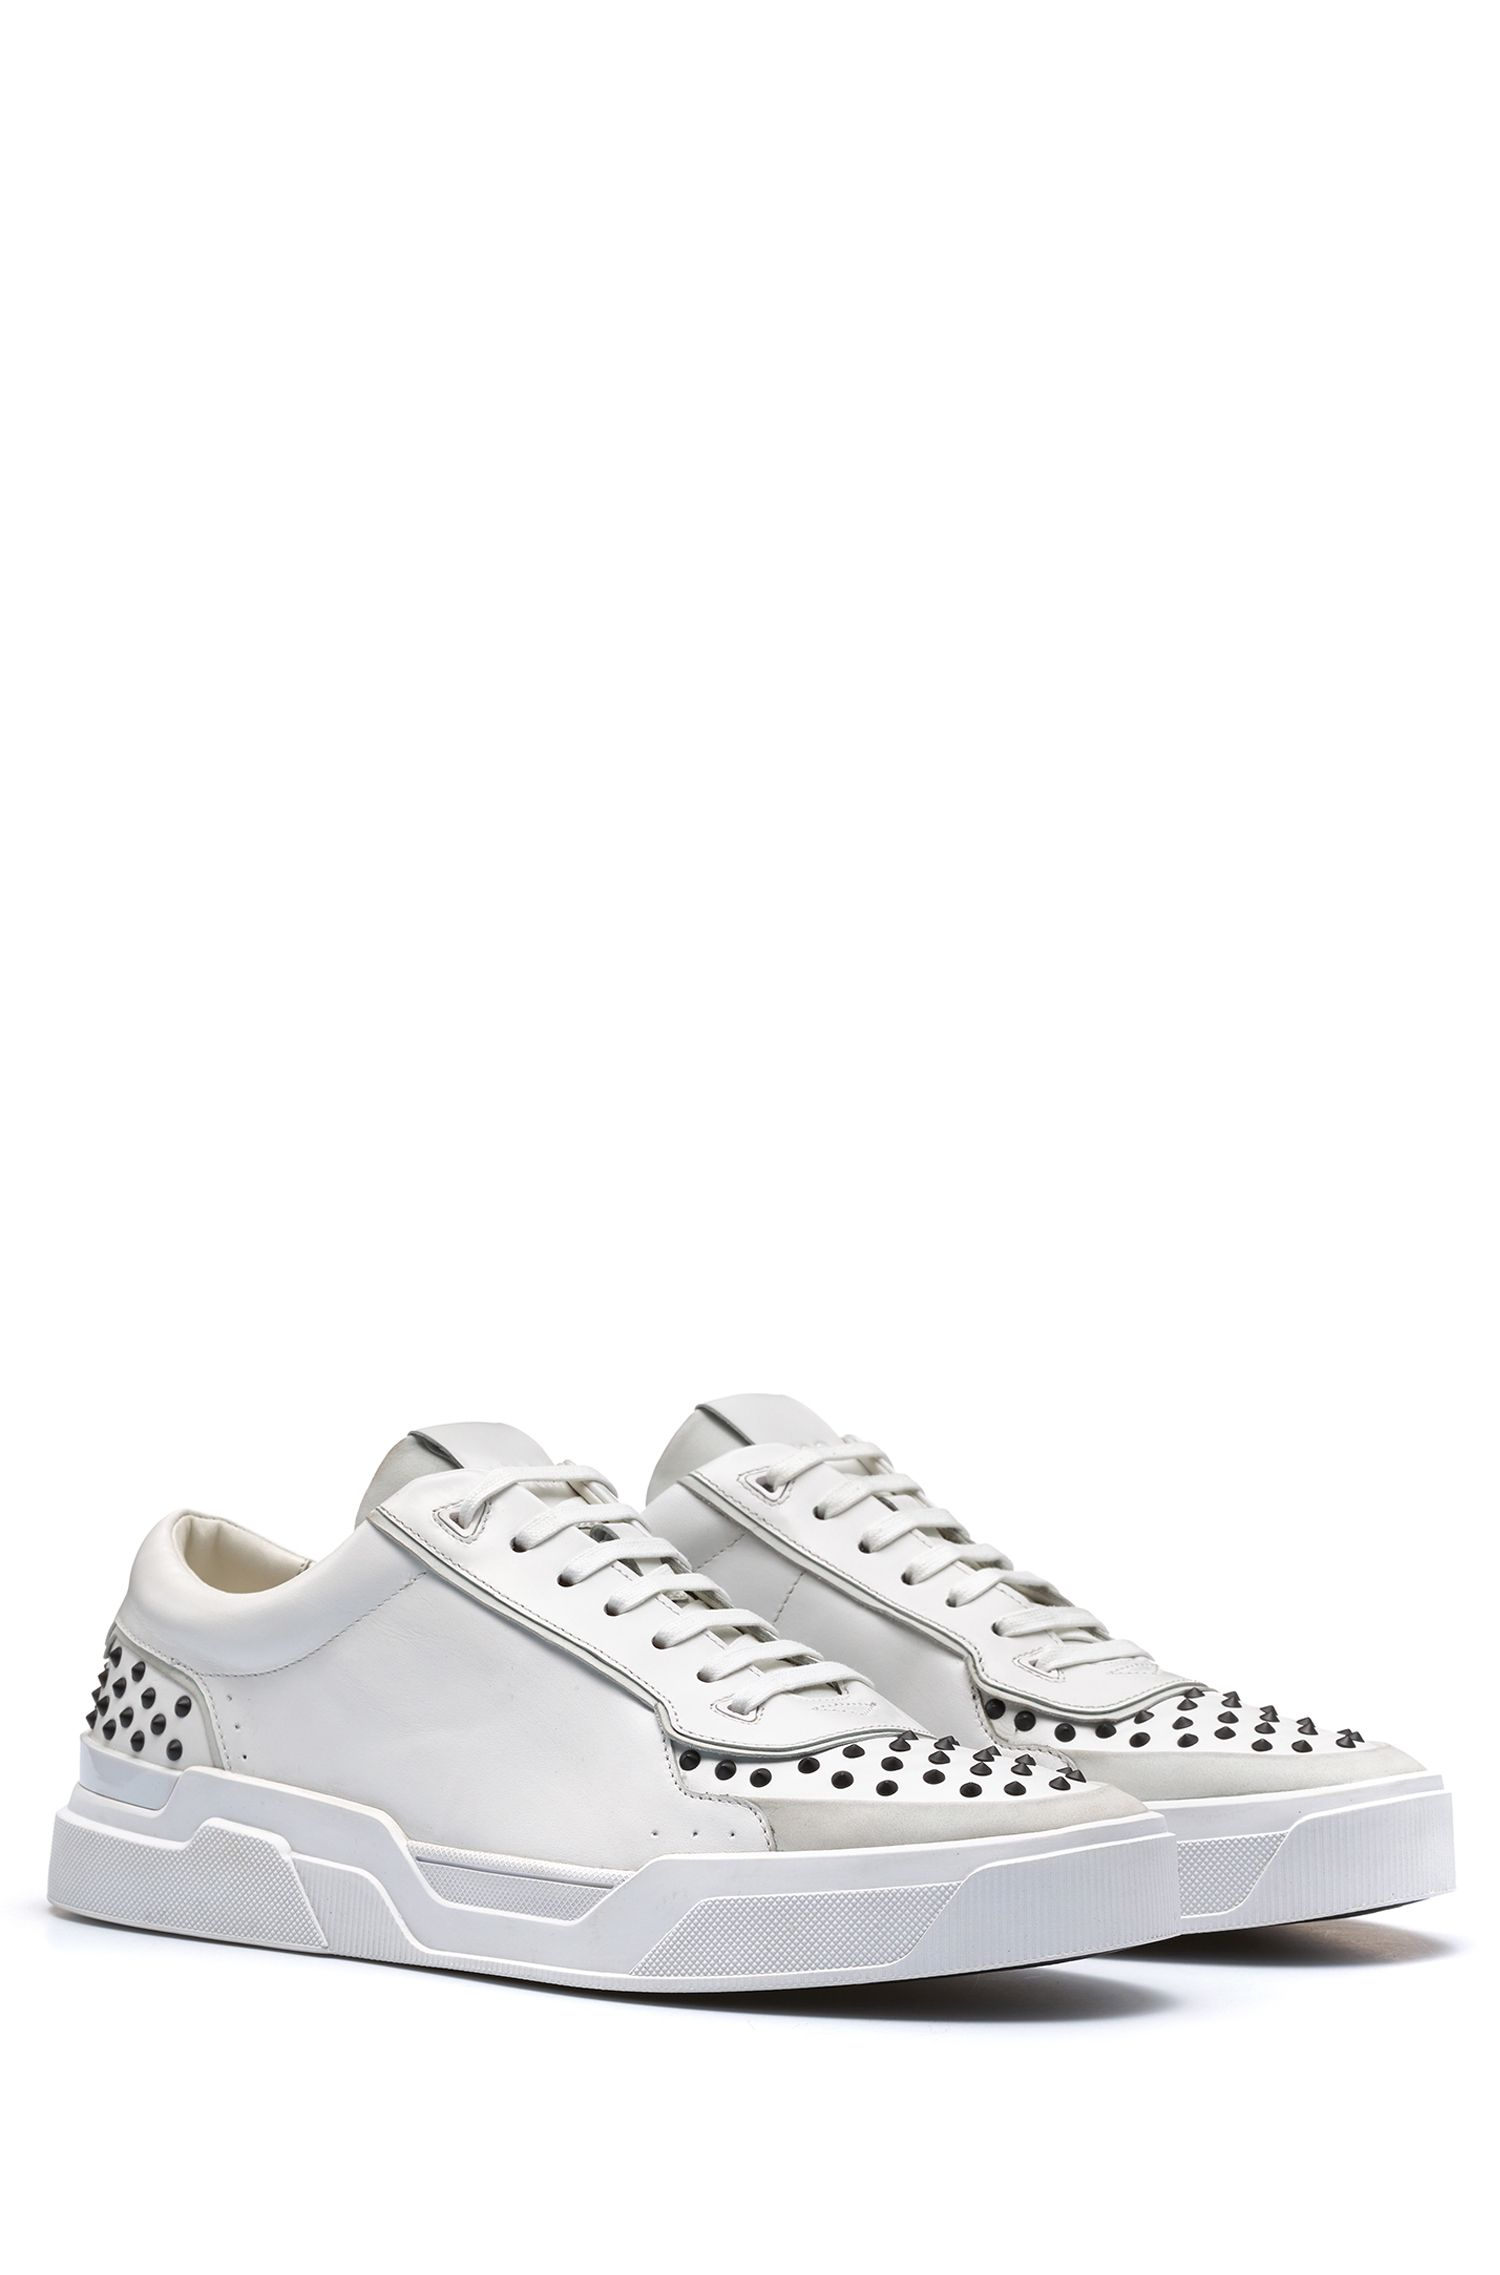 Sneakers in pelle di vitello con borchie decorative